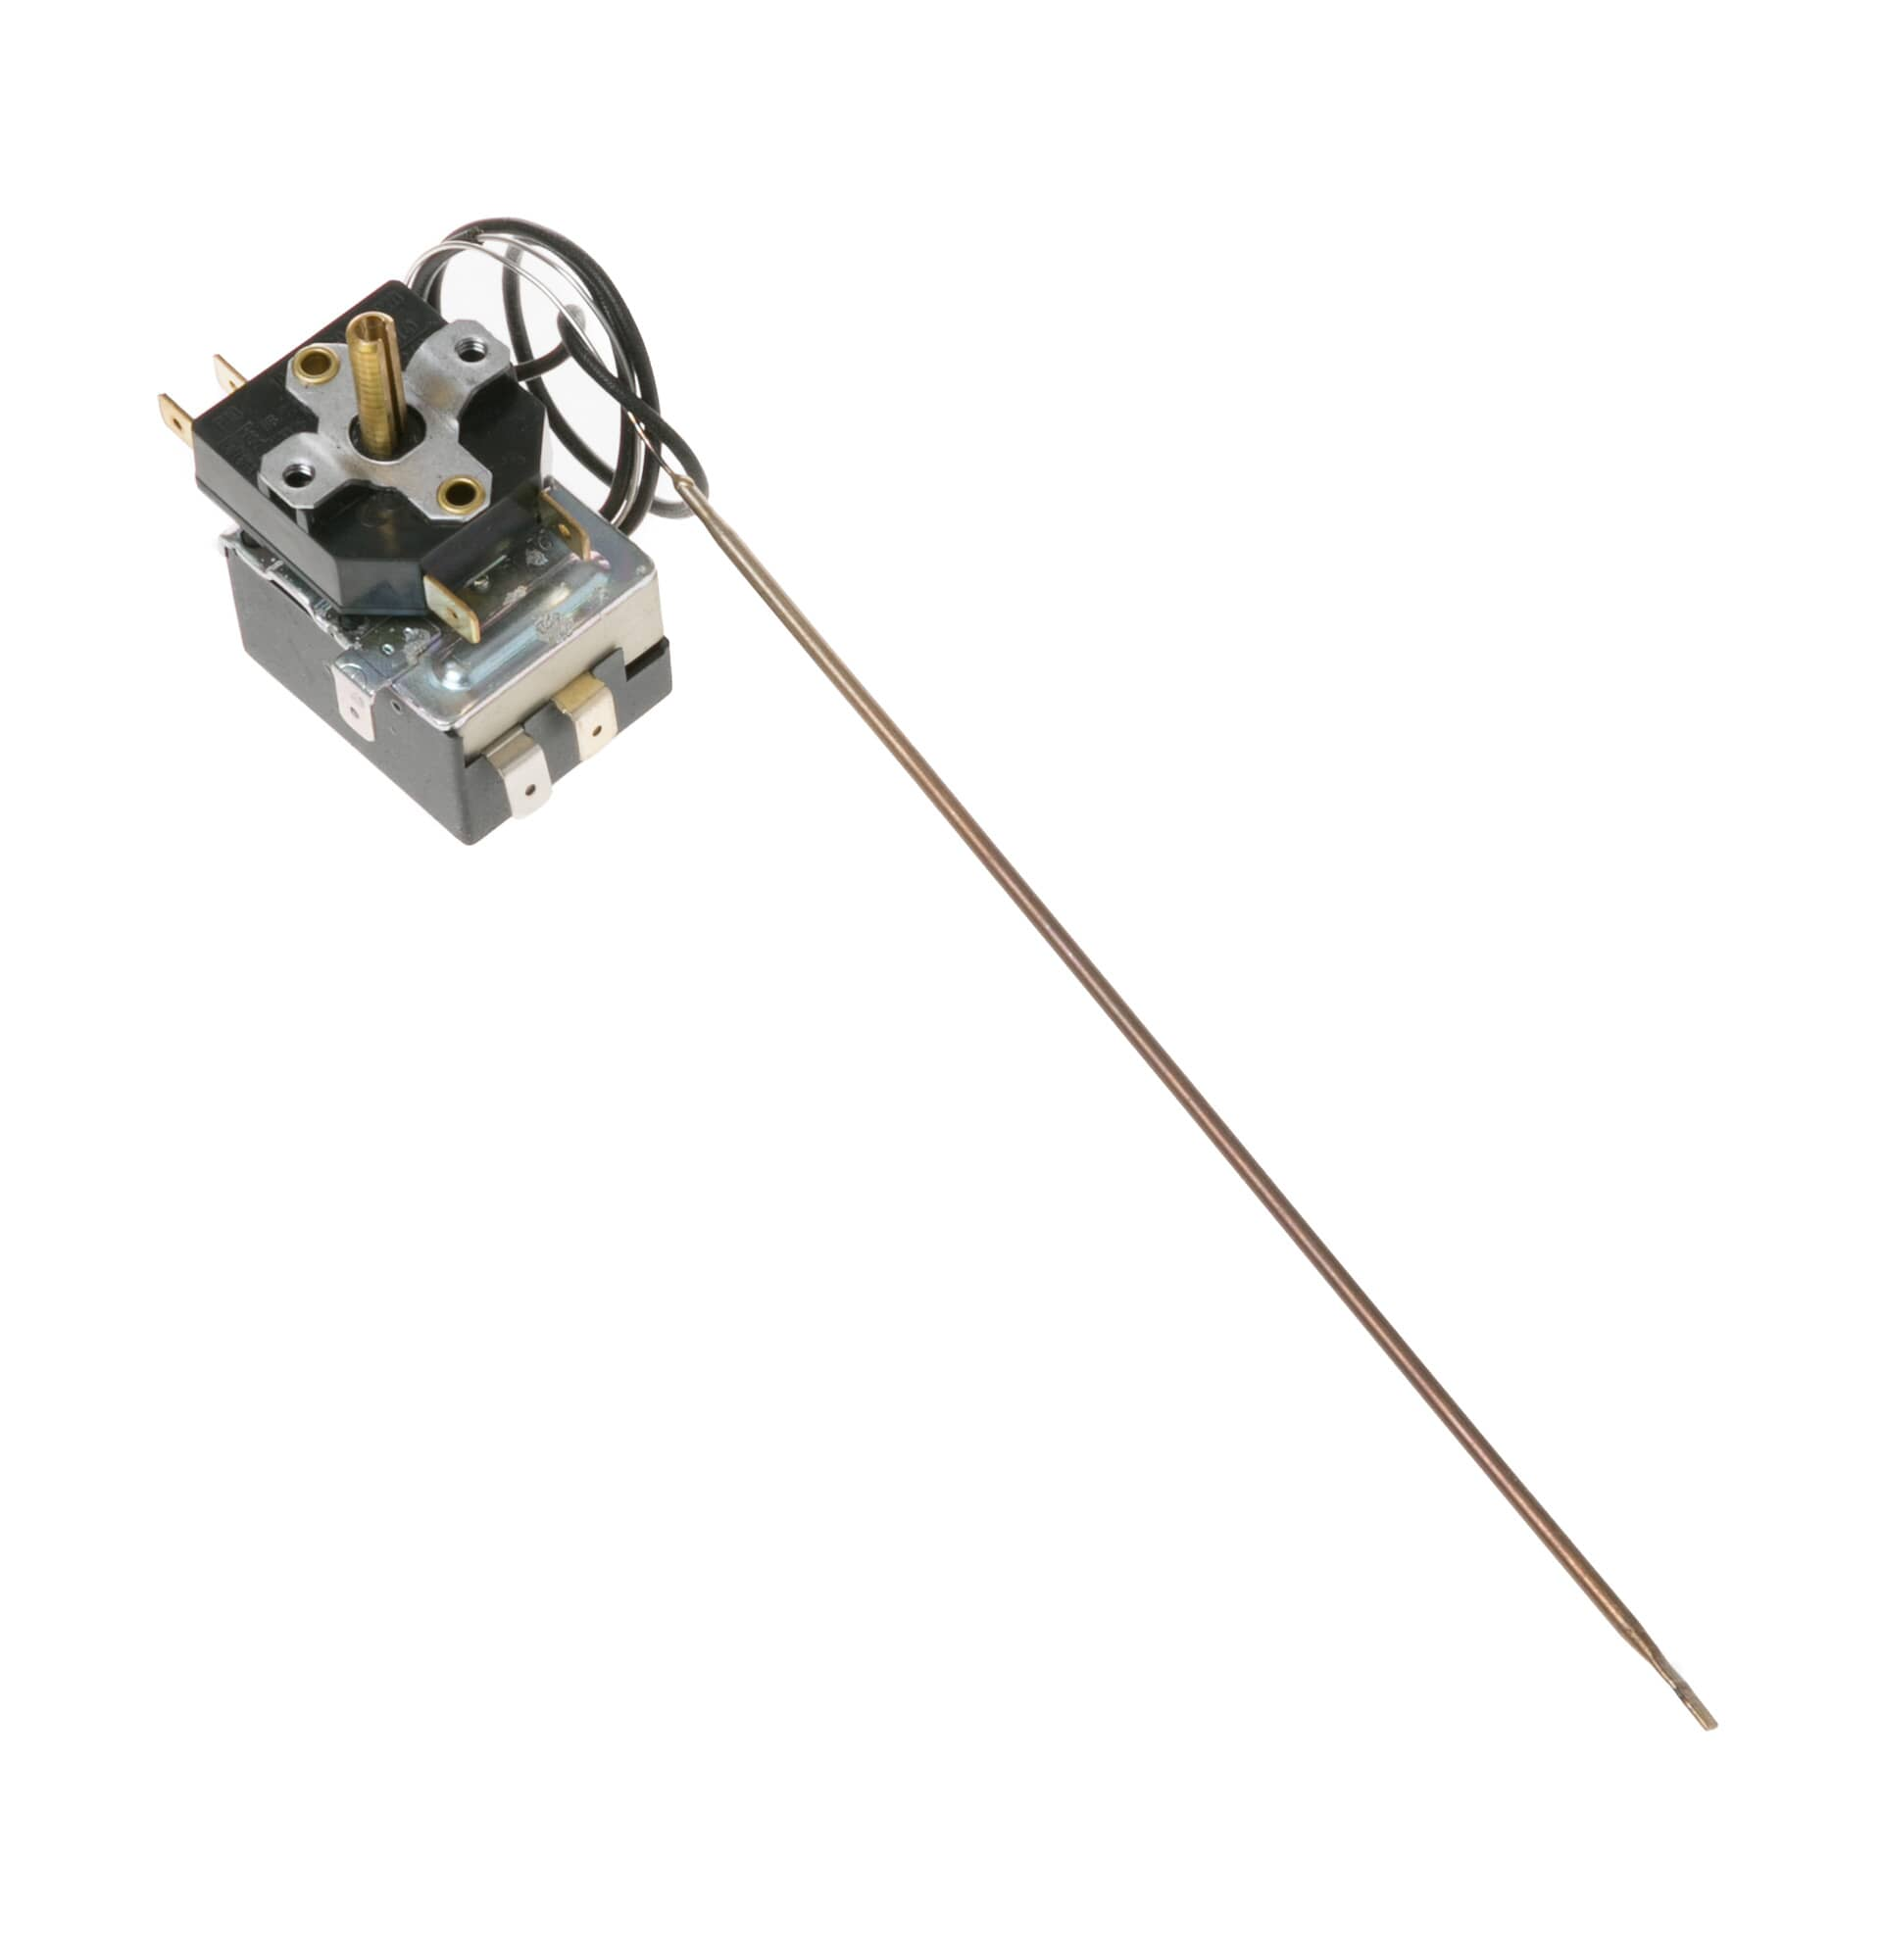 GE Appliance WB20T10009 THERMOSTAT